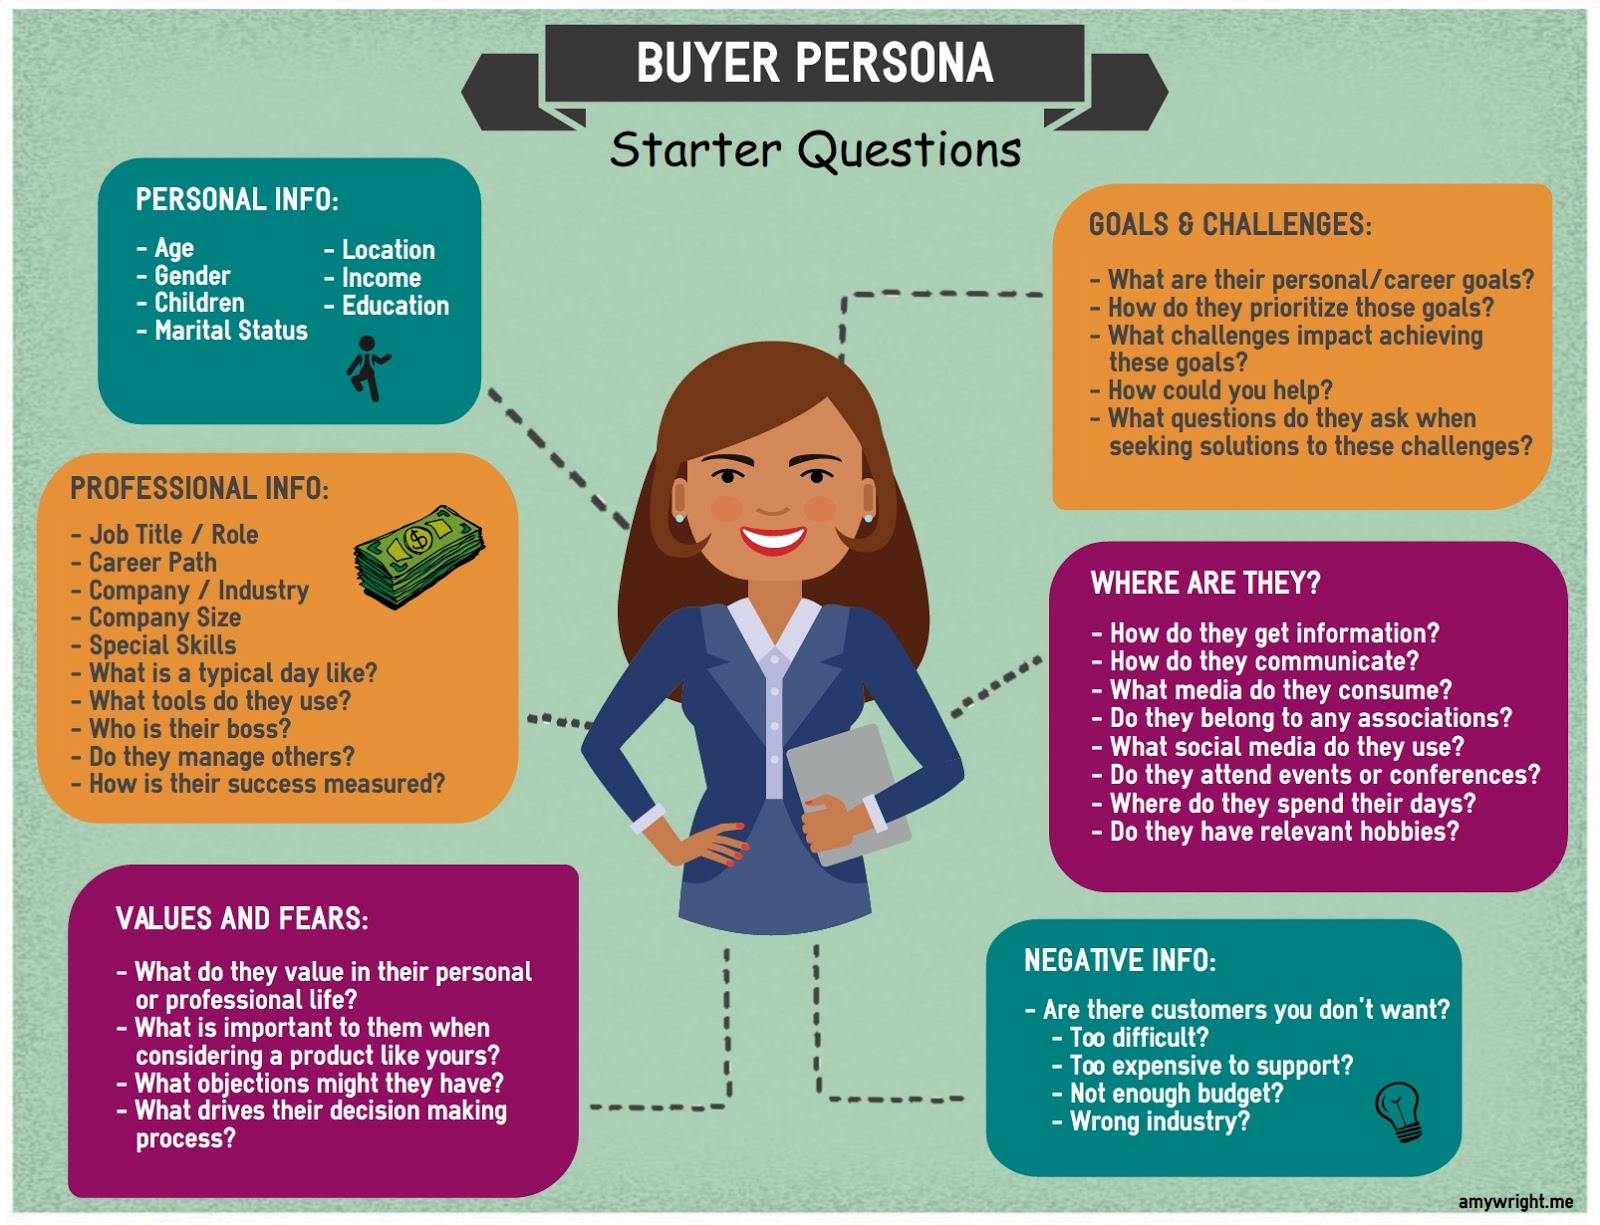 Buyer persona infographic with a brown-haired woman in the center.